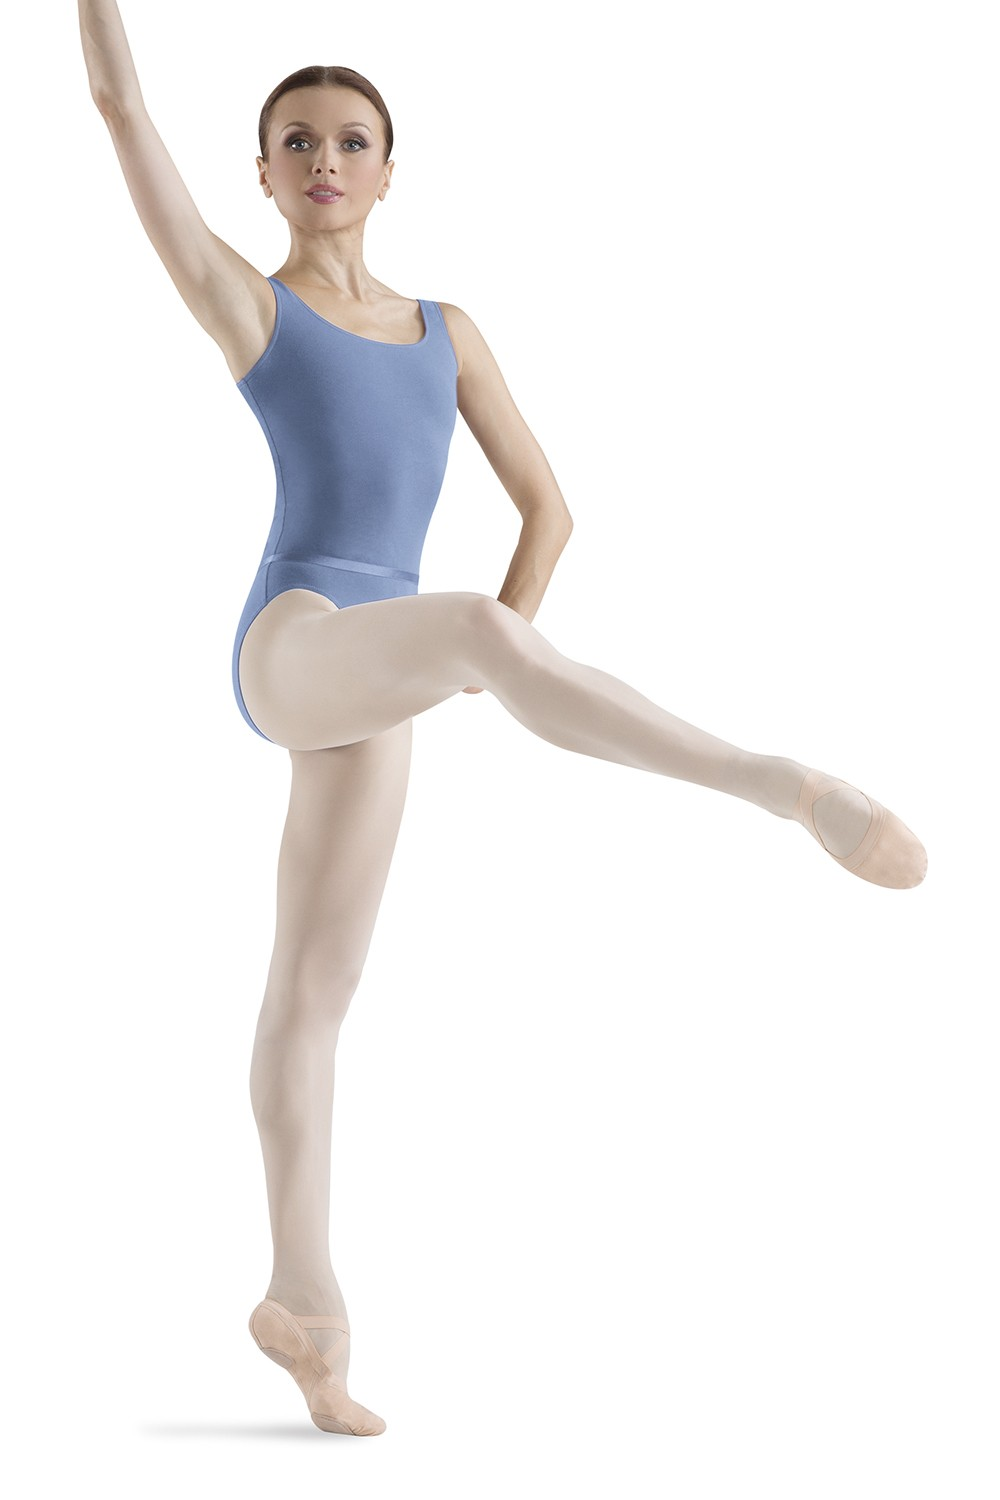 Women's Dance Uniforms